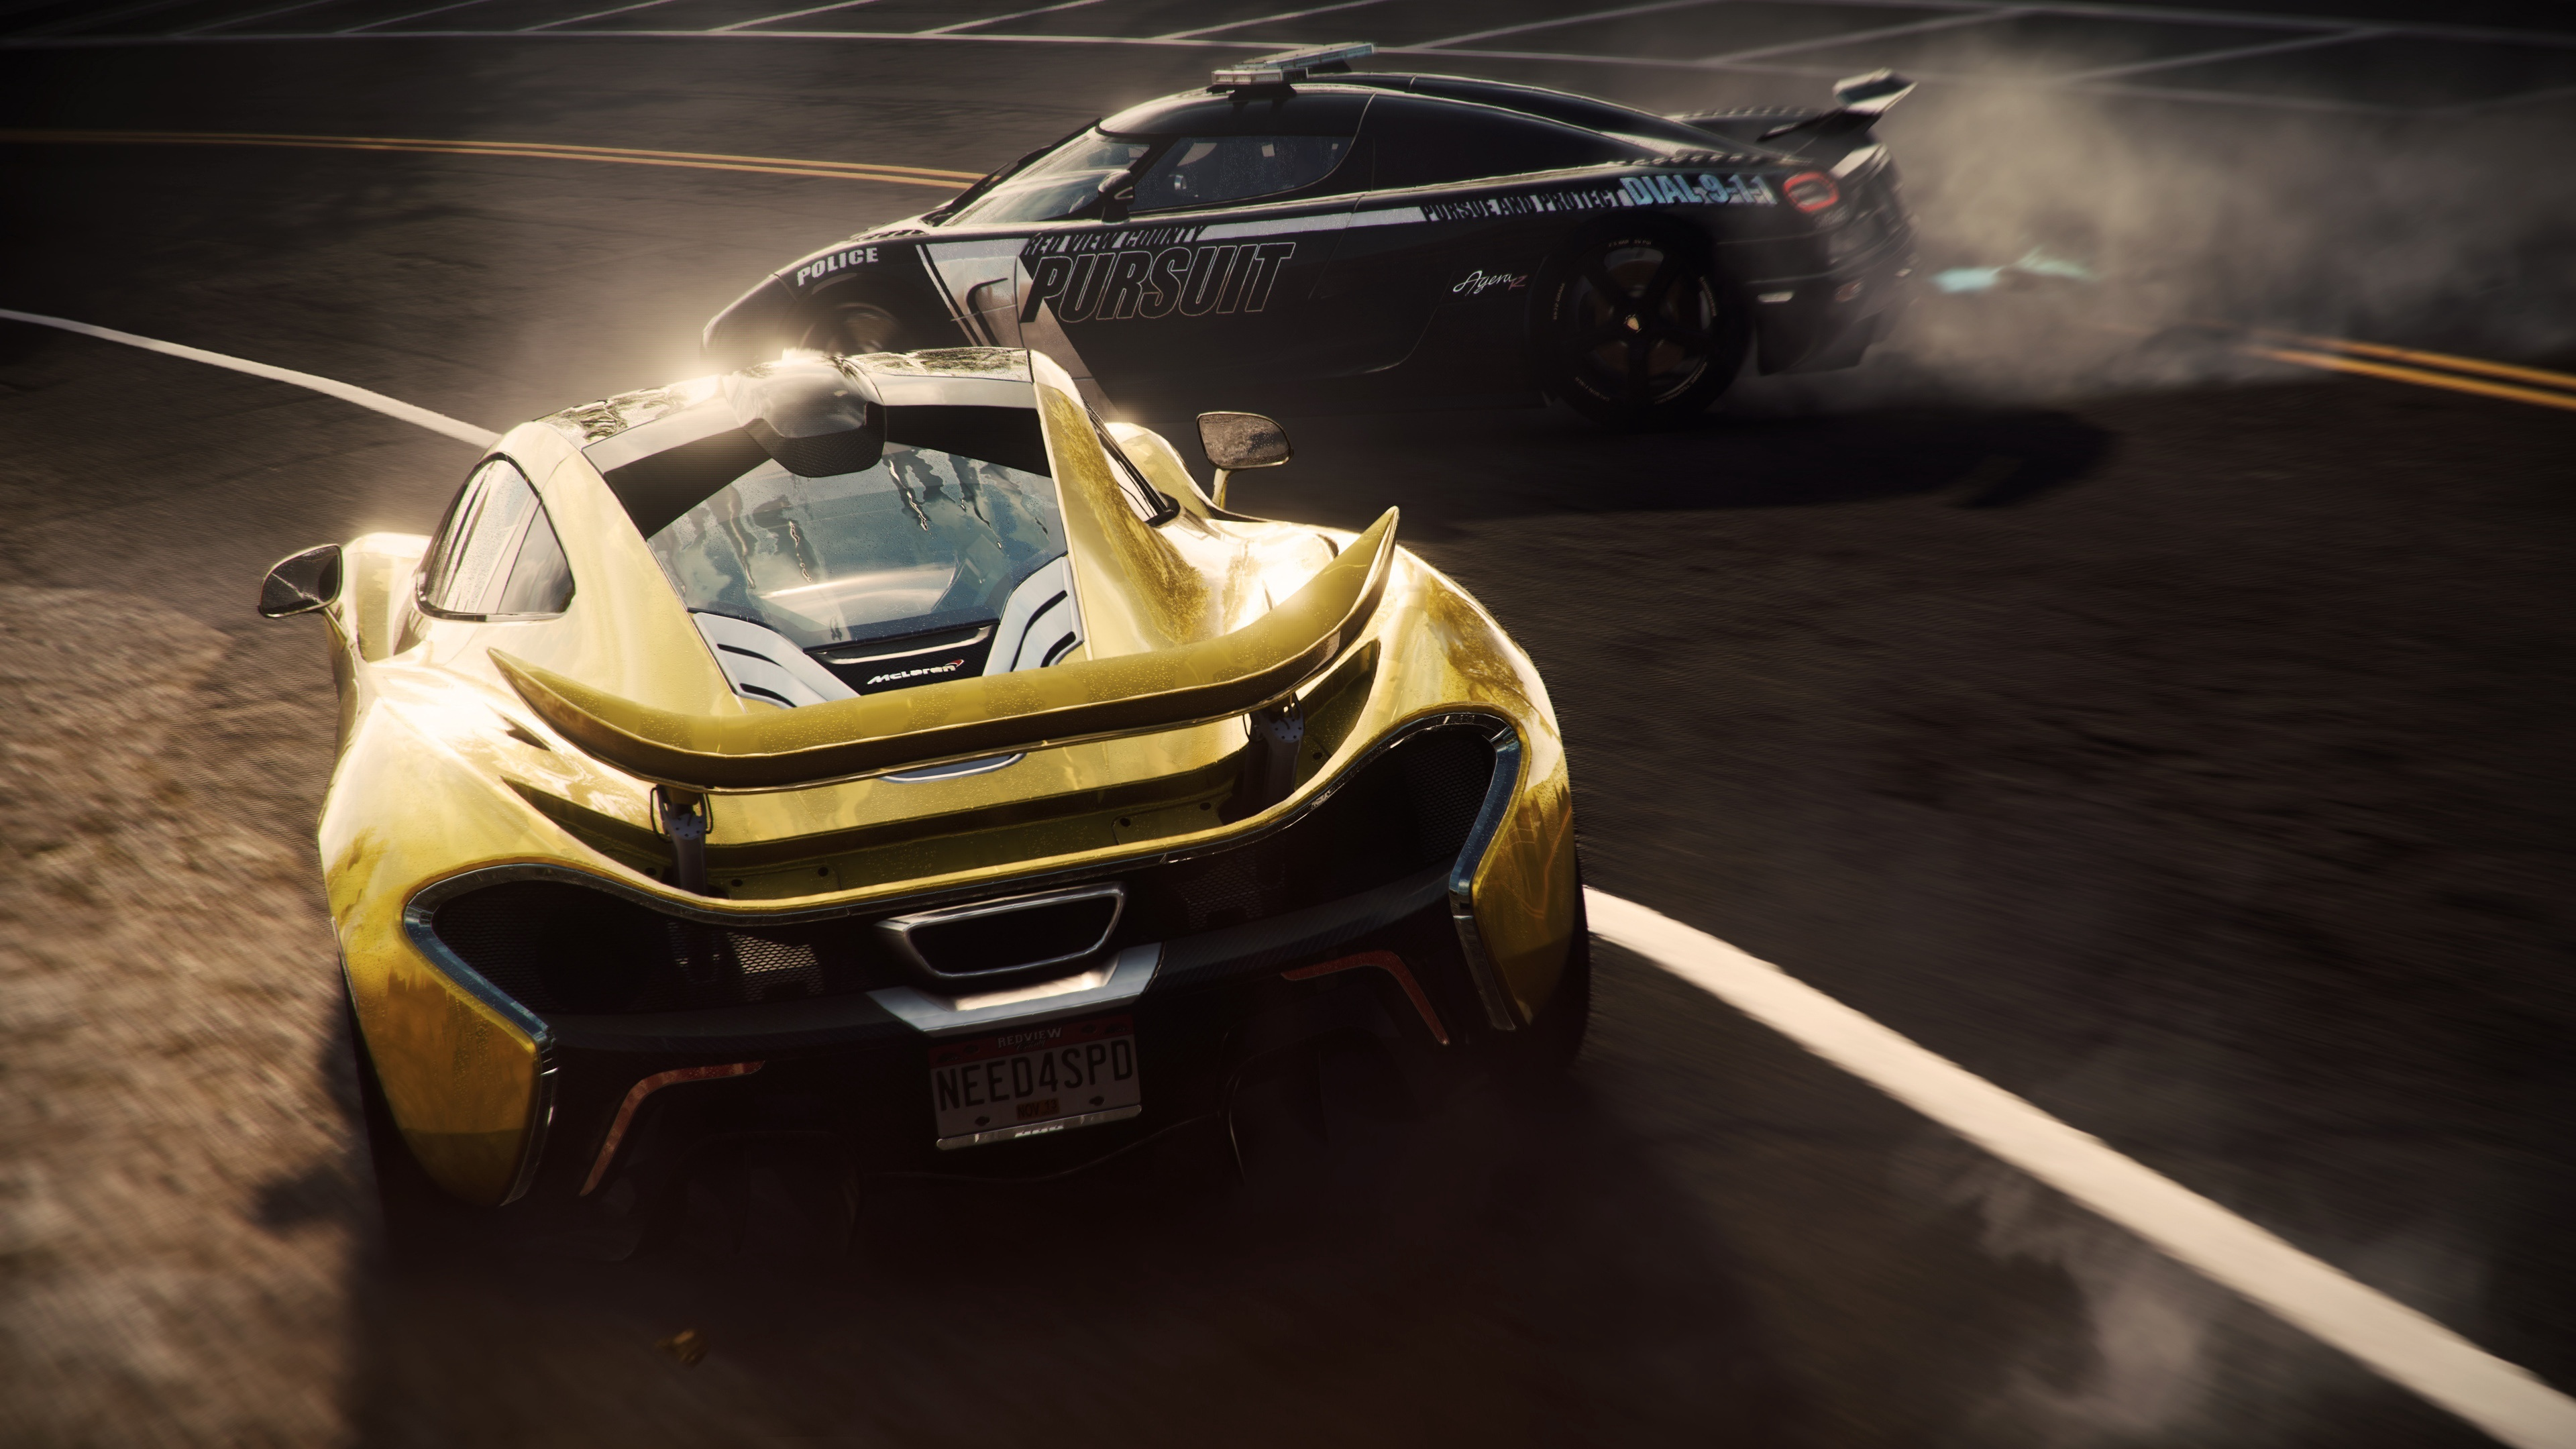 need for speed rivals nfs rivals need for speed mclaren p1 koenigsegg 4k 1538945028 - need for speed rivals, nfs rivals, need for speed, mclaren p1, koenigsegg 4k - nfs rivals, need for speed rivals, need for speed